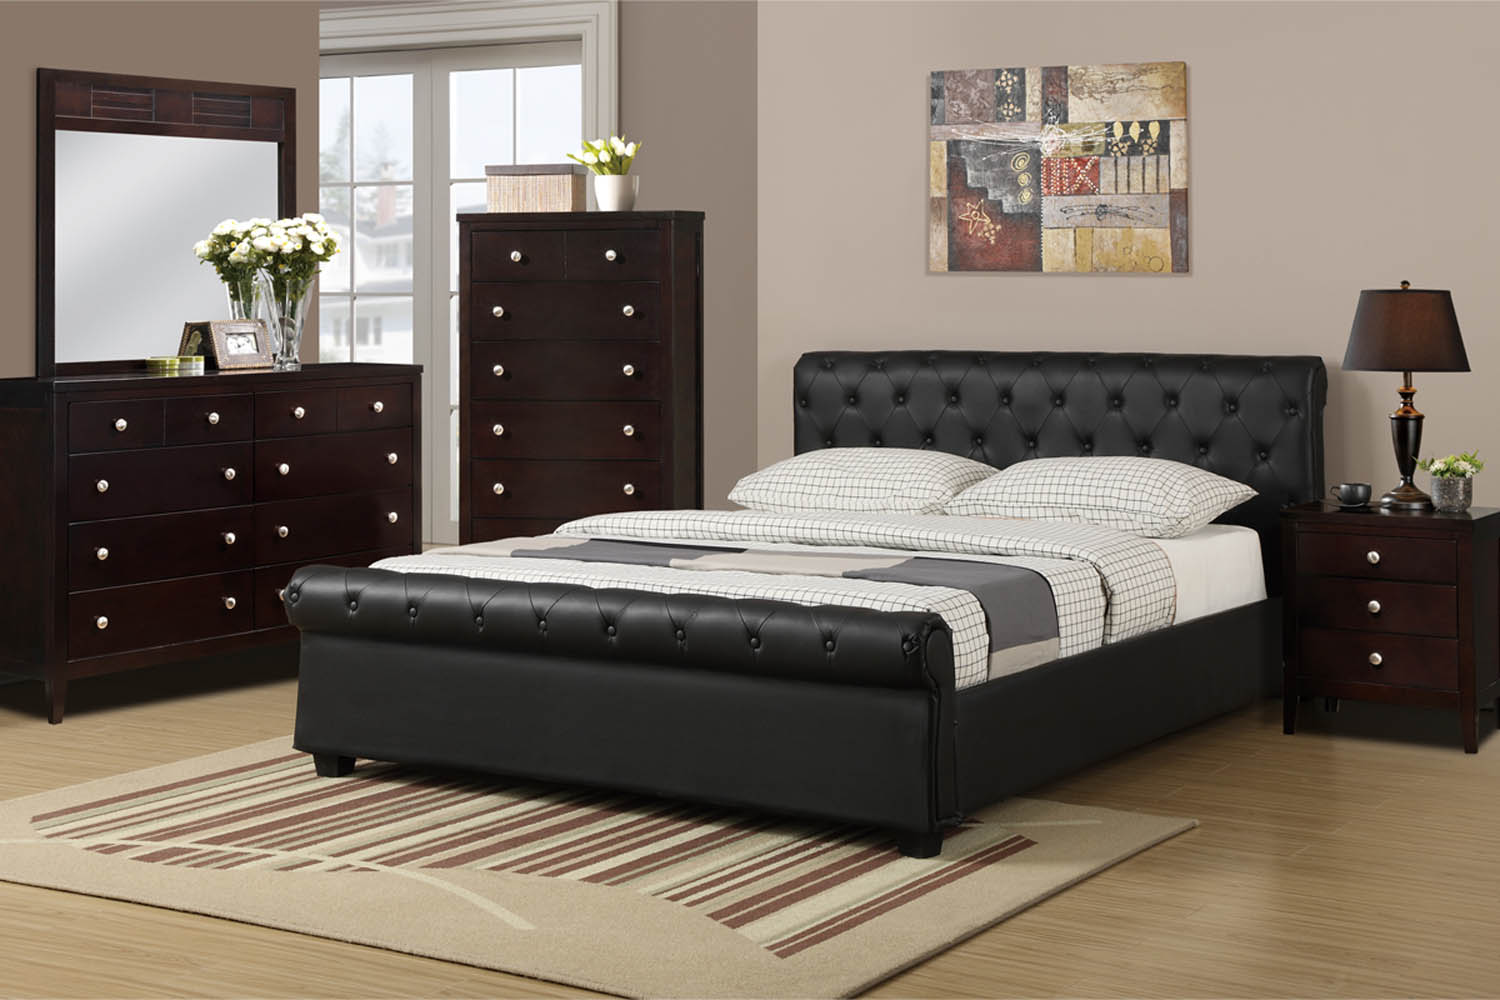 Length Of A Double Bed Queen Black Faux Leather Bed Frame